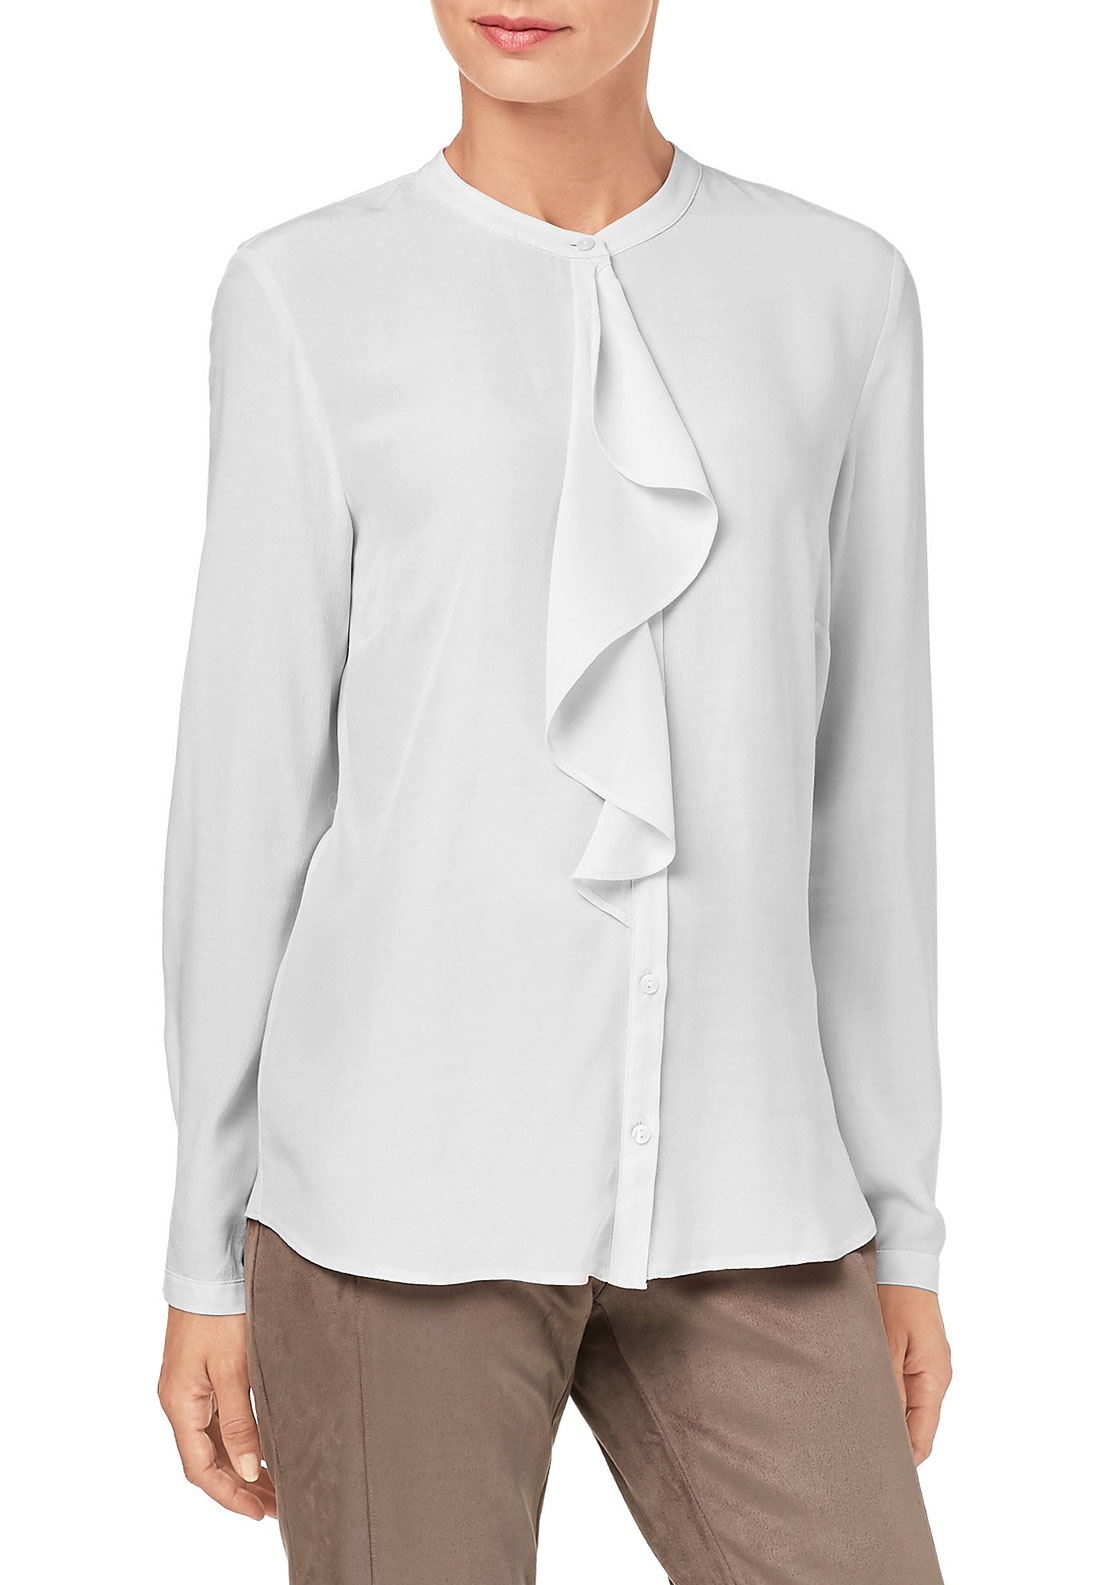 Gerry Weber Ruffle Trim Blouse, White